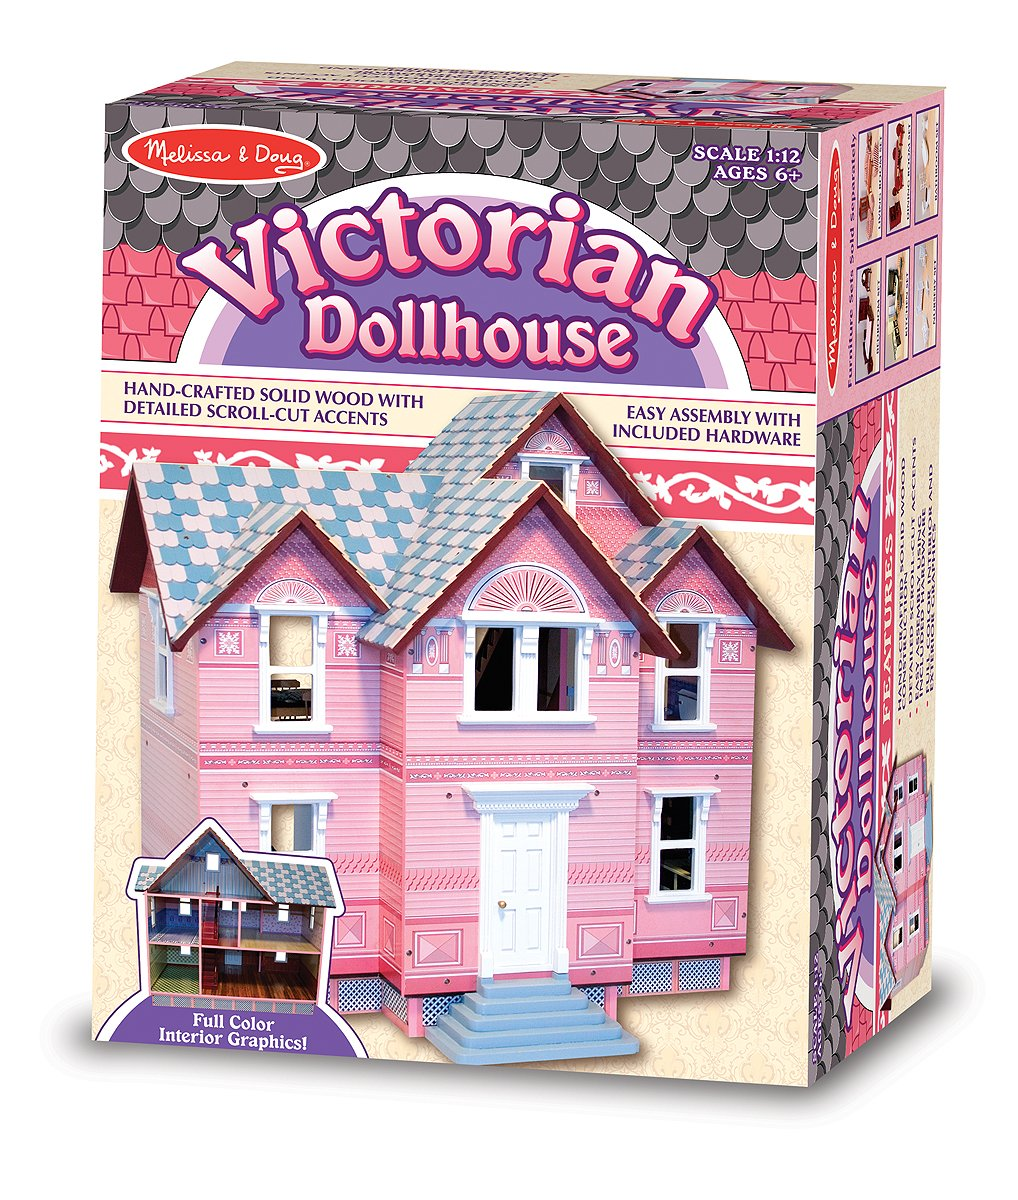 Charming Buy Melissa U0026 Doug 2580 Victorian Doll House Online At Low Prices In India    Amazon.in